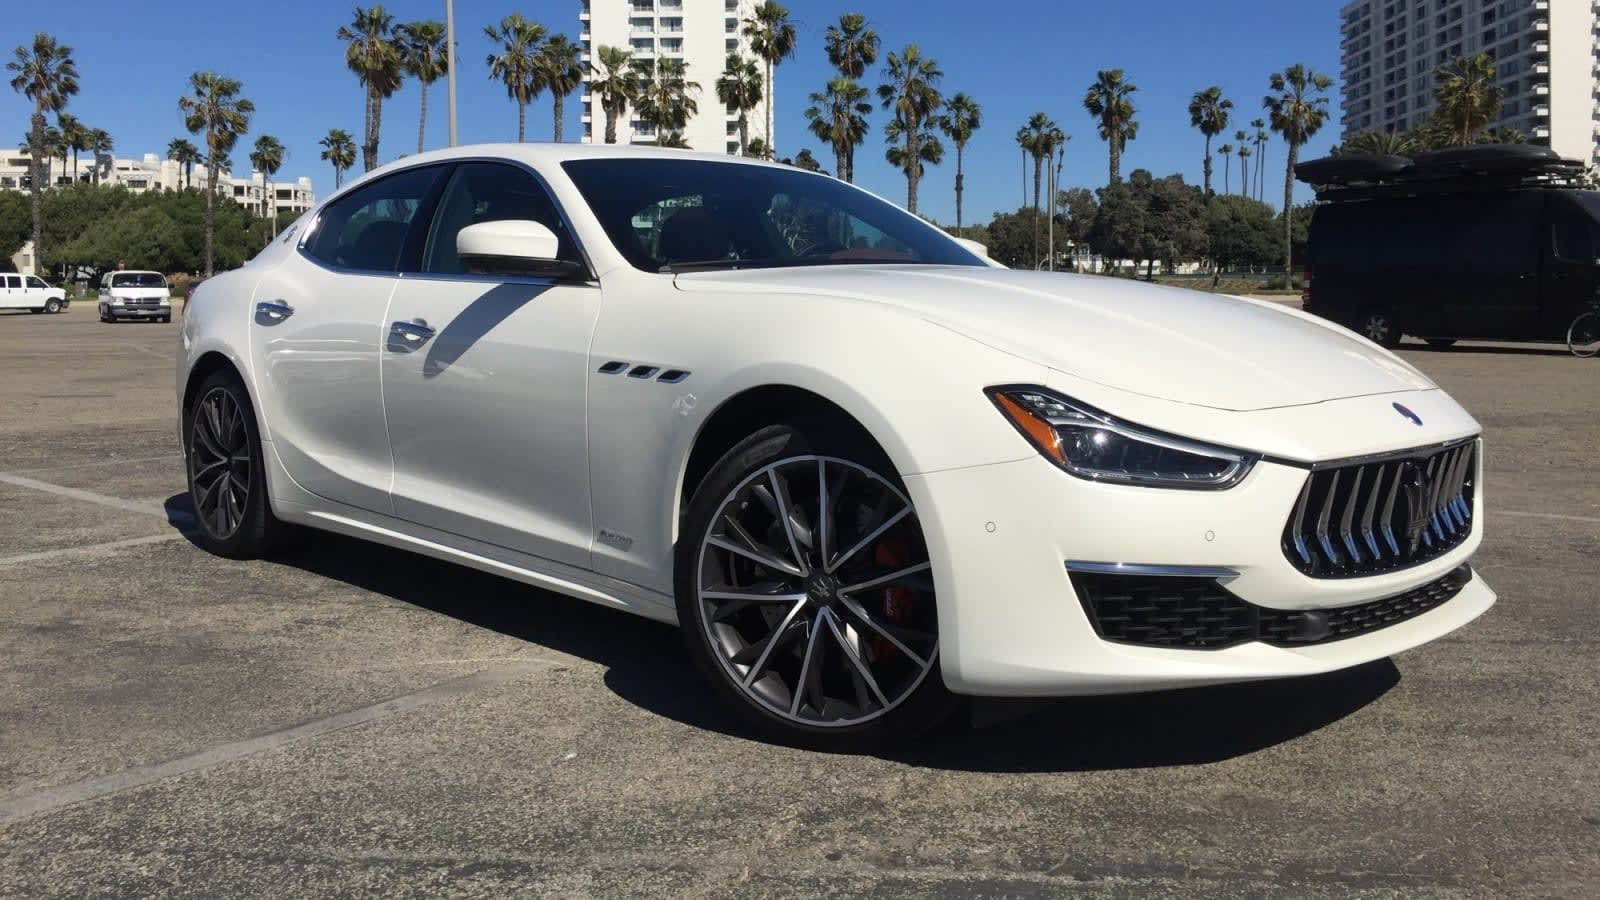 Maserati may unveil its first hybrid car on April 21st